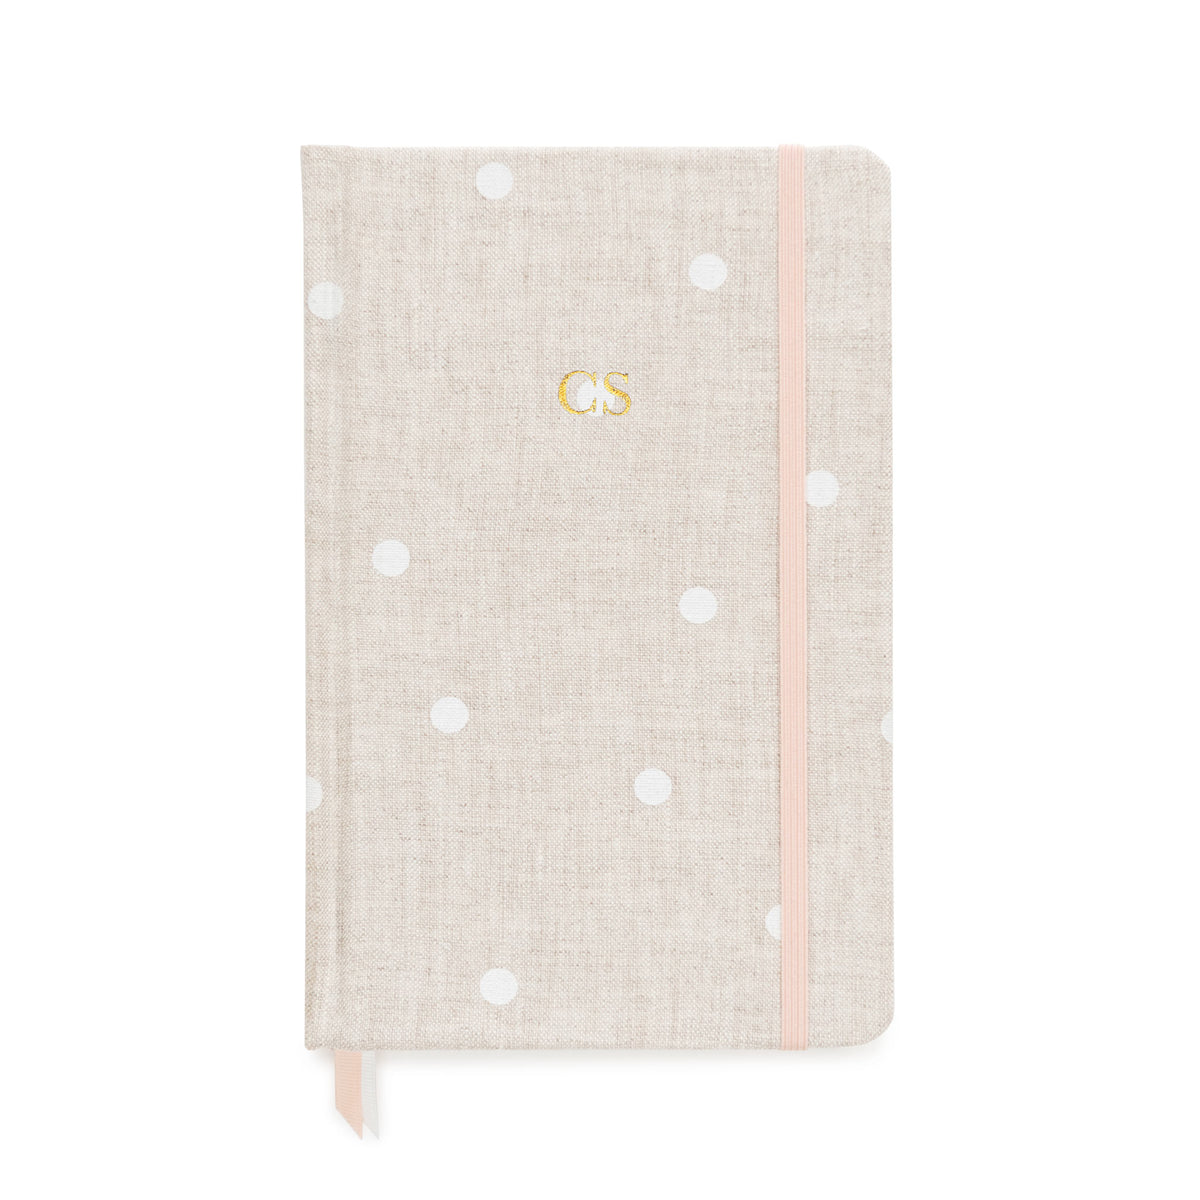 Flax and white dot journal with gold monogram